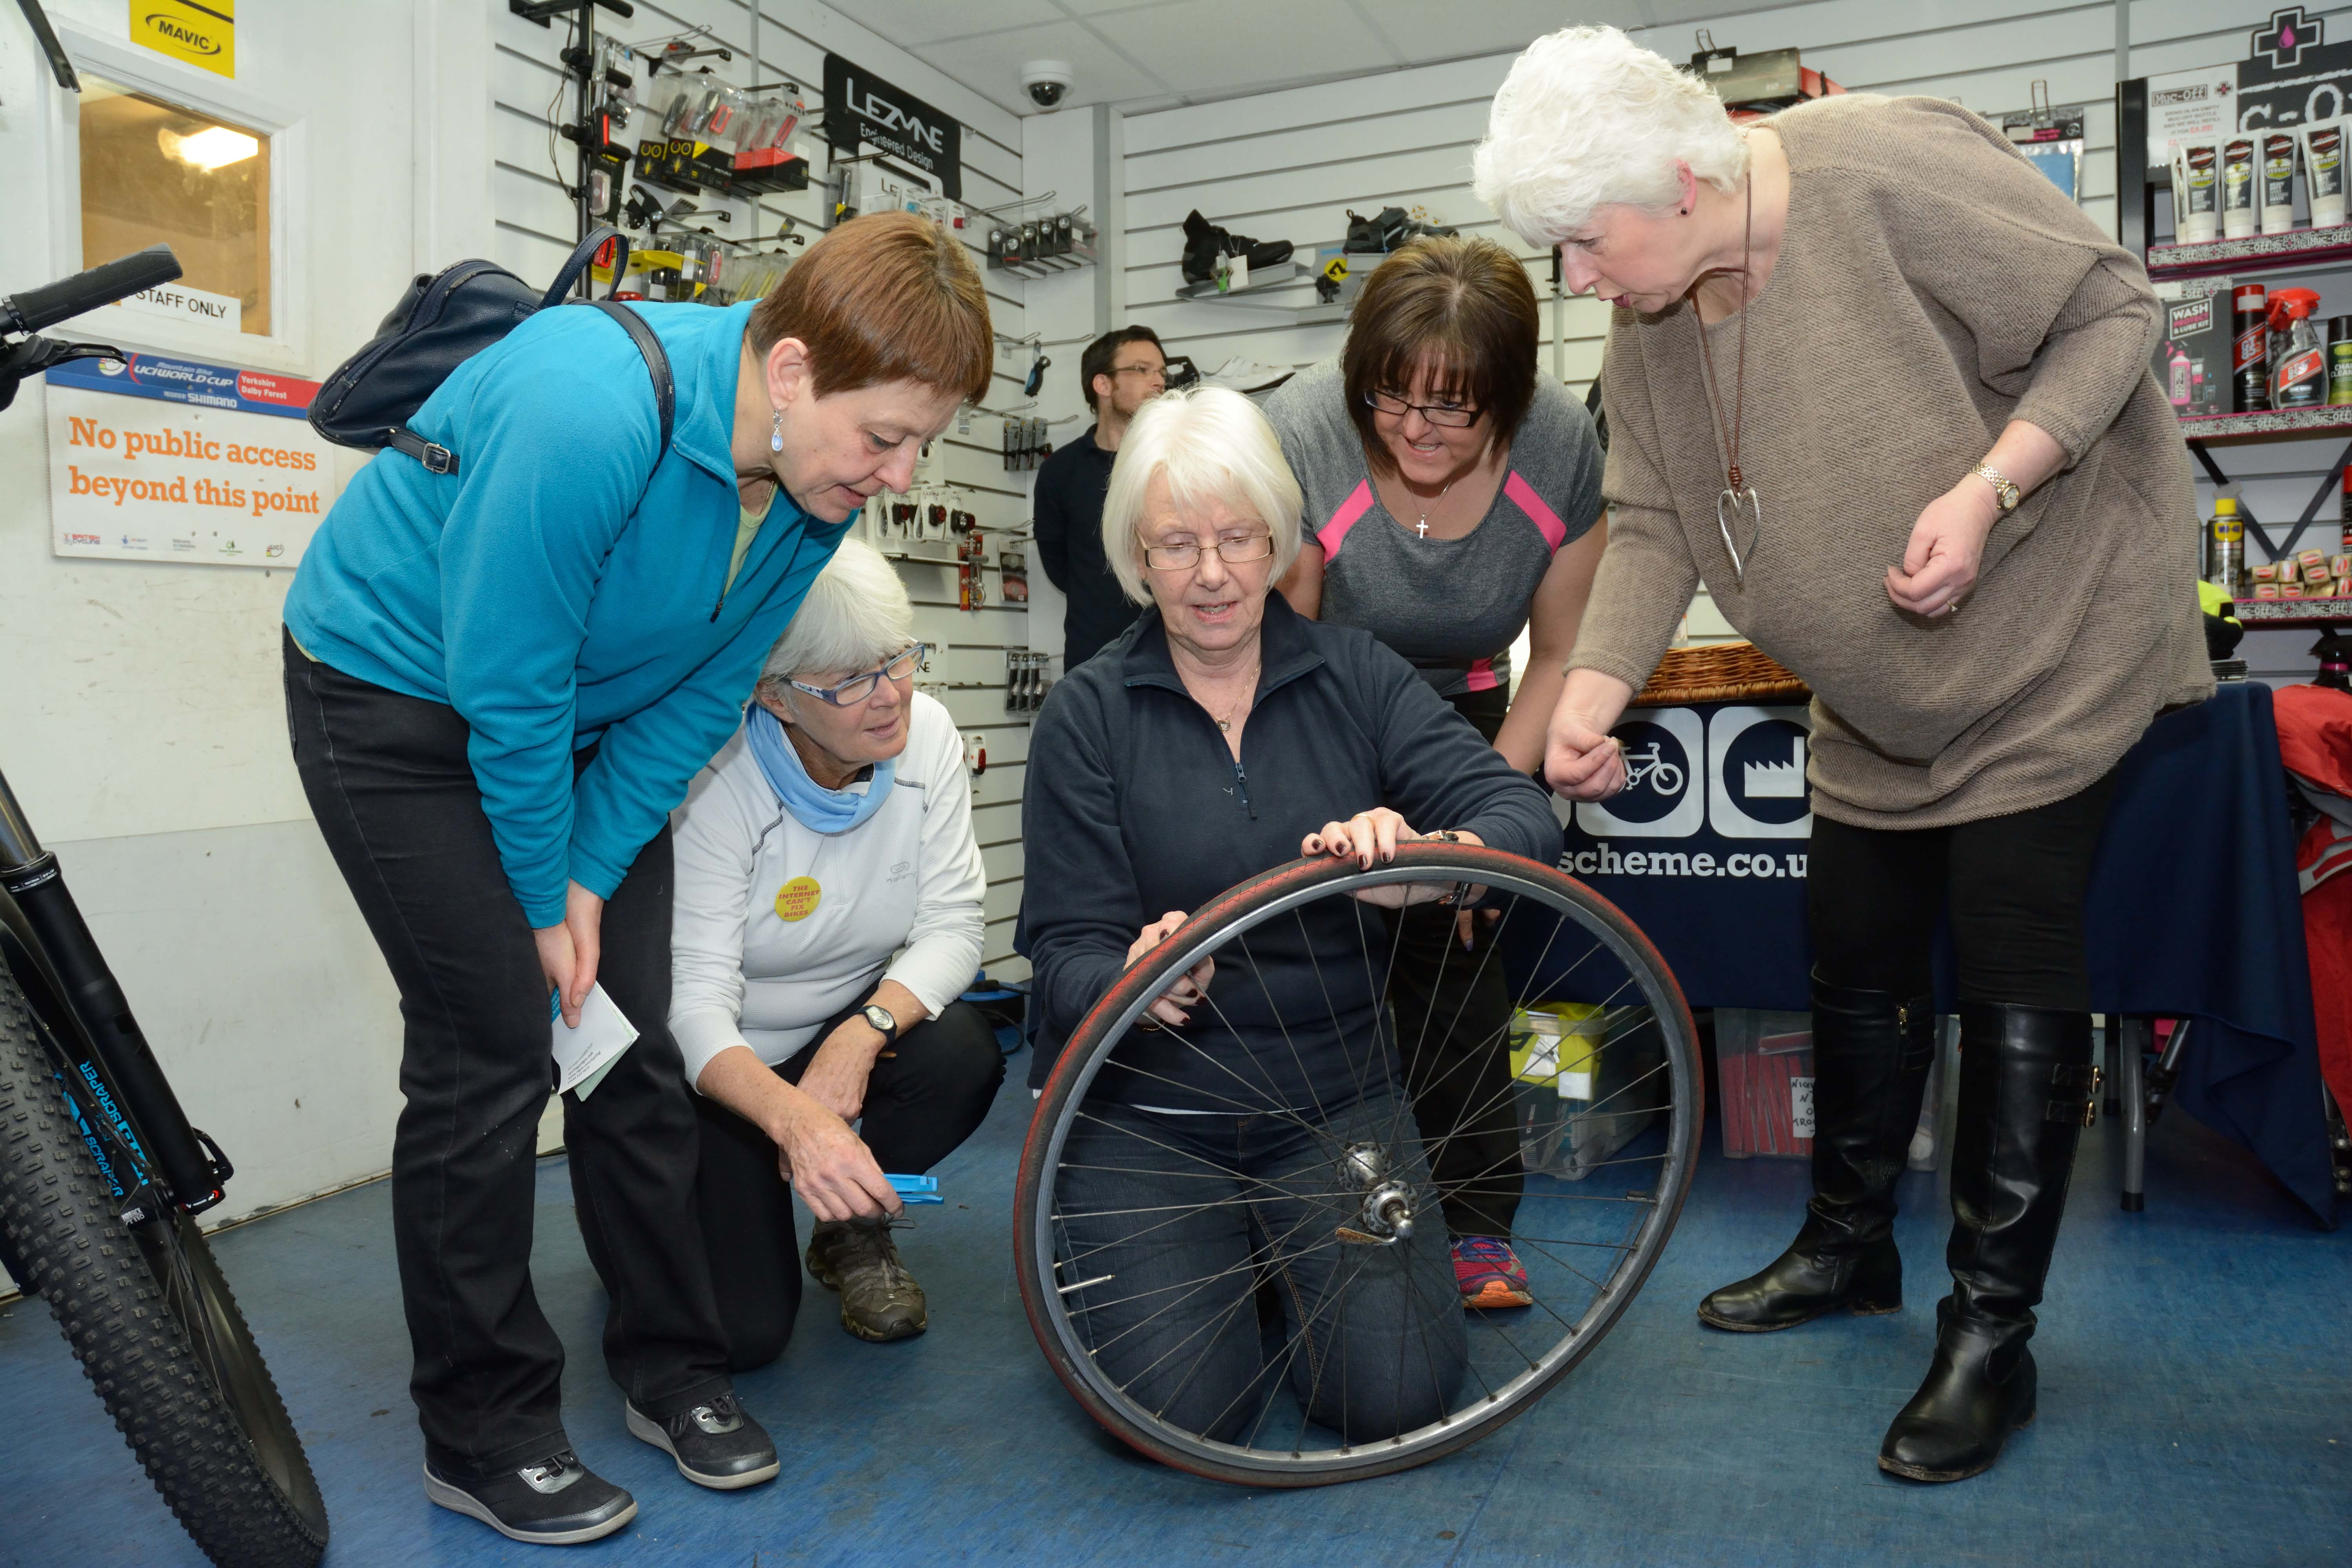 Puncture party workshop at Ken Foster's